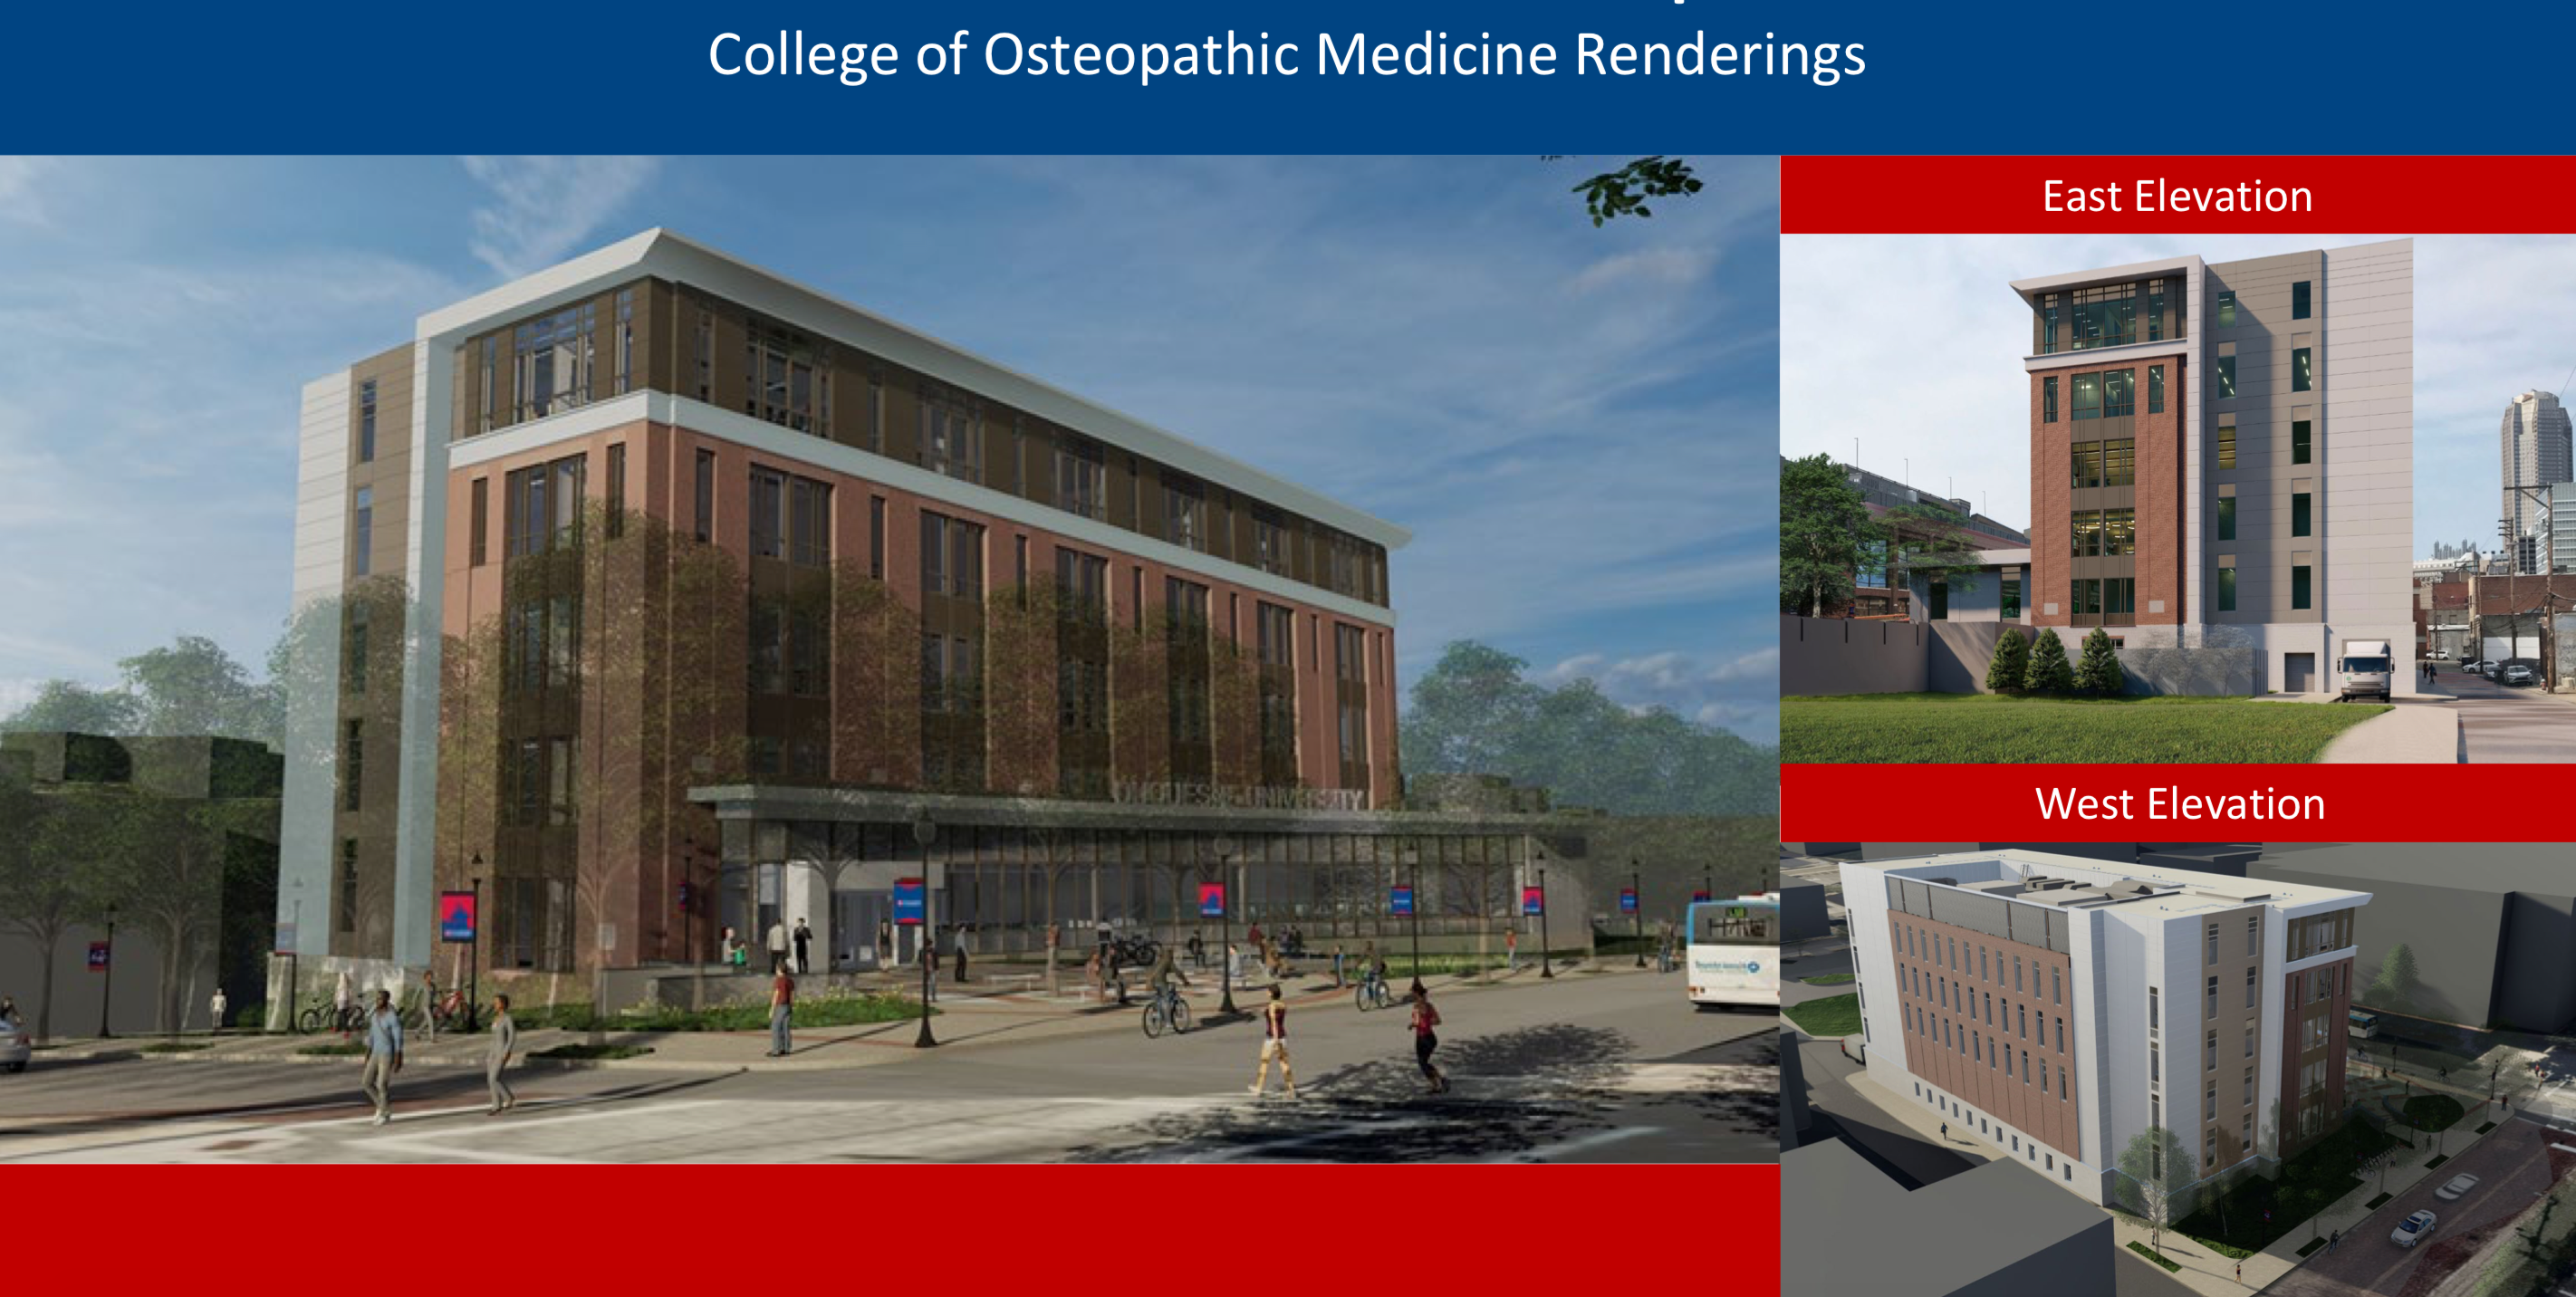 A rendering of Duquesne University's proposed College of Osteopathic Medicine building, presented to Pittsburgh's City Planning Commission on June 1, 2021.